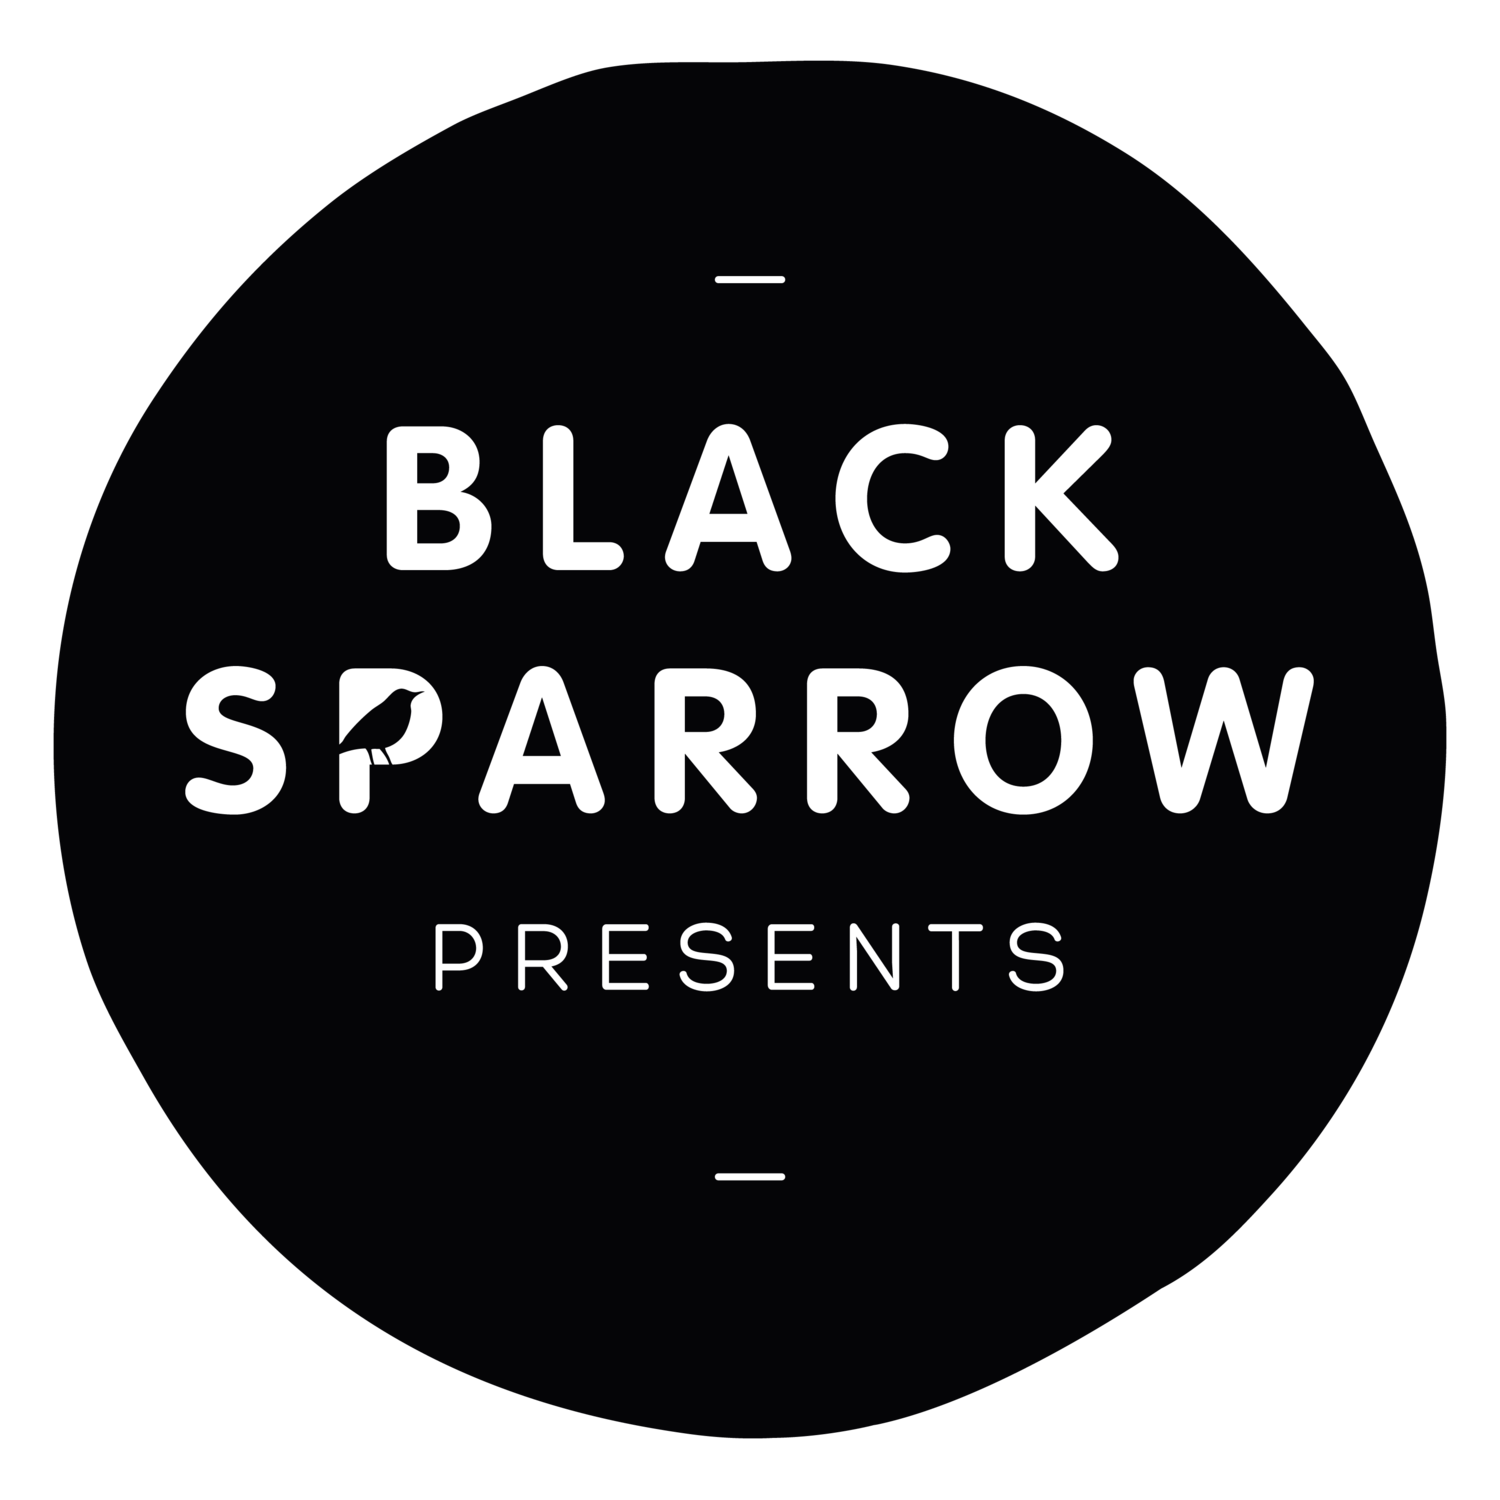 Black Sparrow Presents